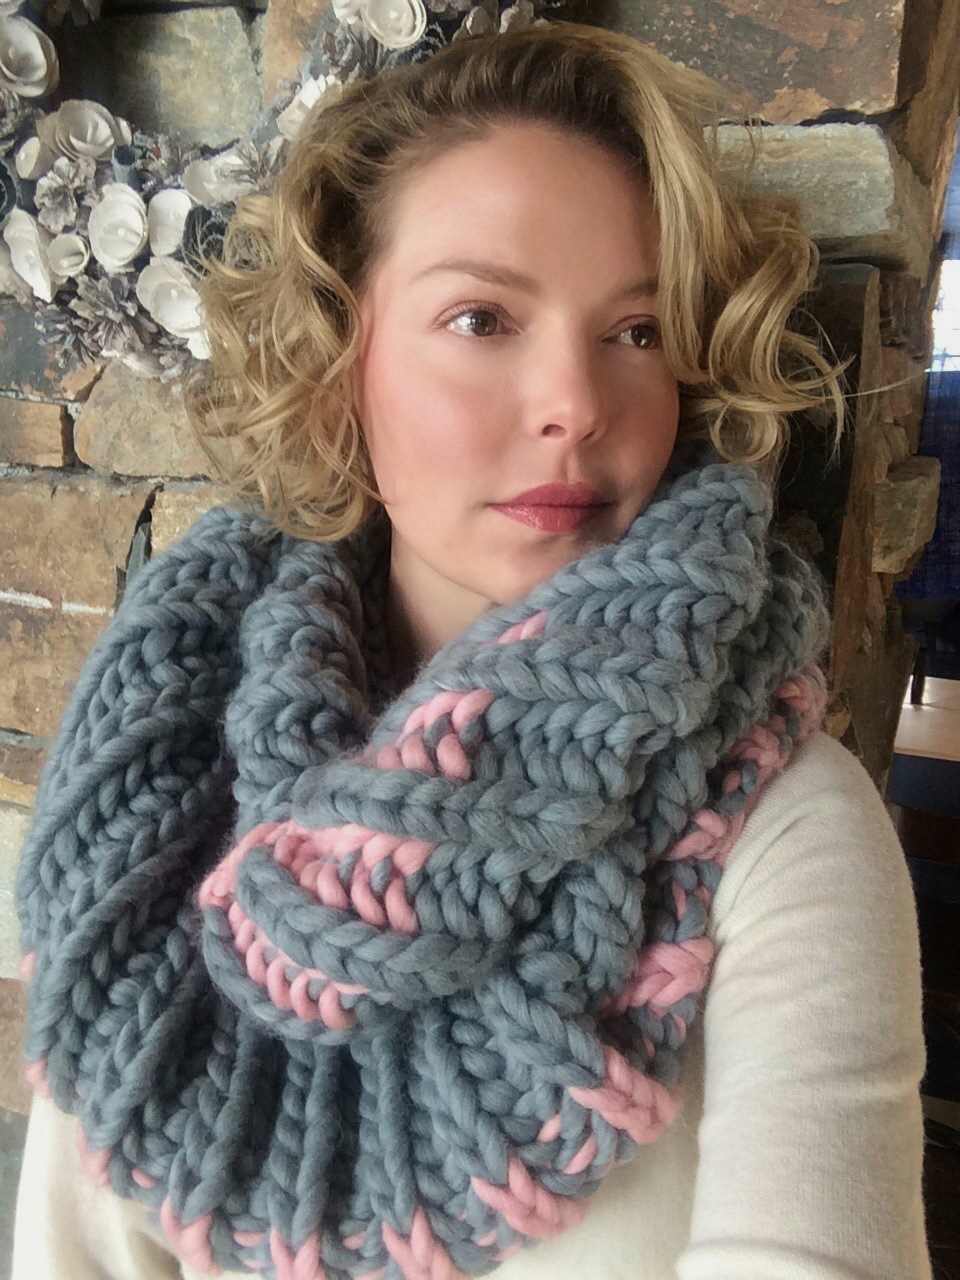 Katherine Heigl Modelling Her Color Dipped Cowl